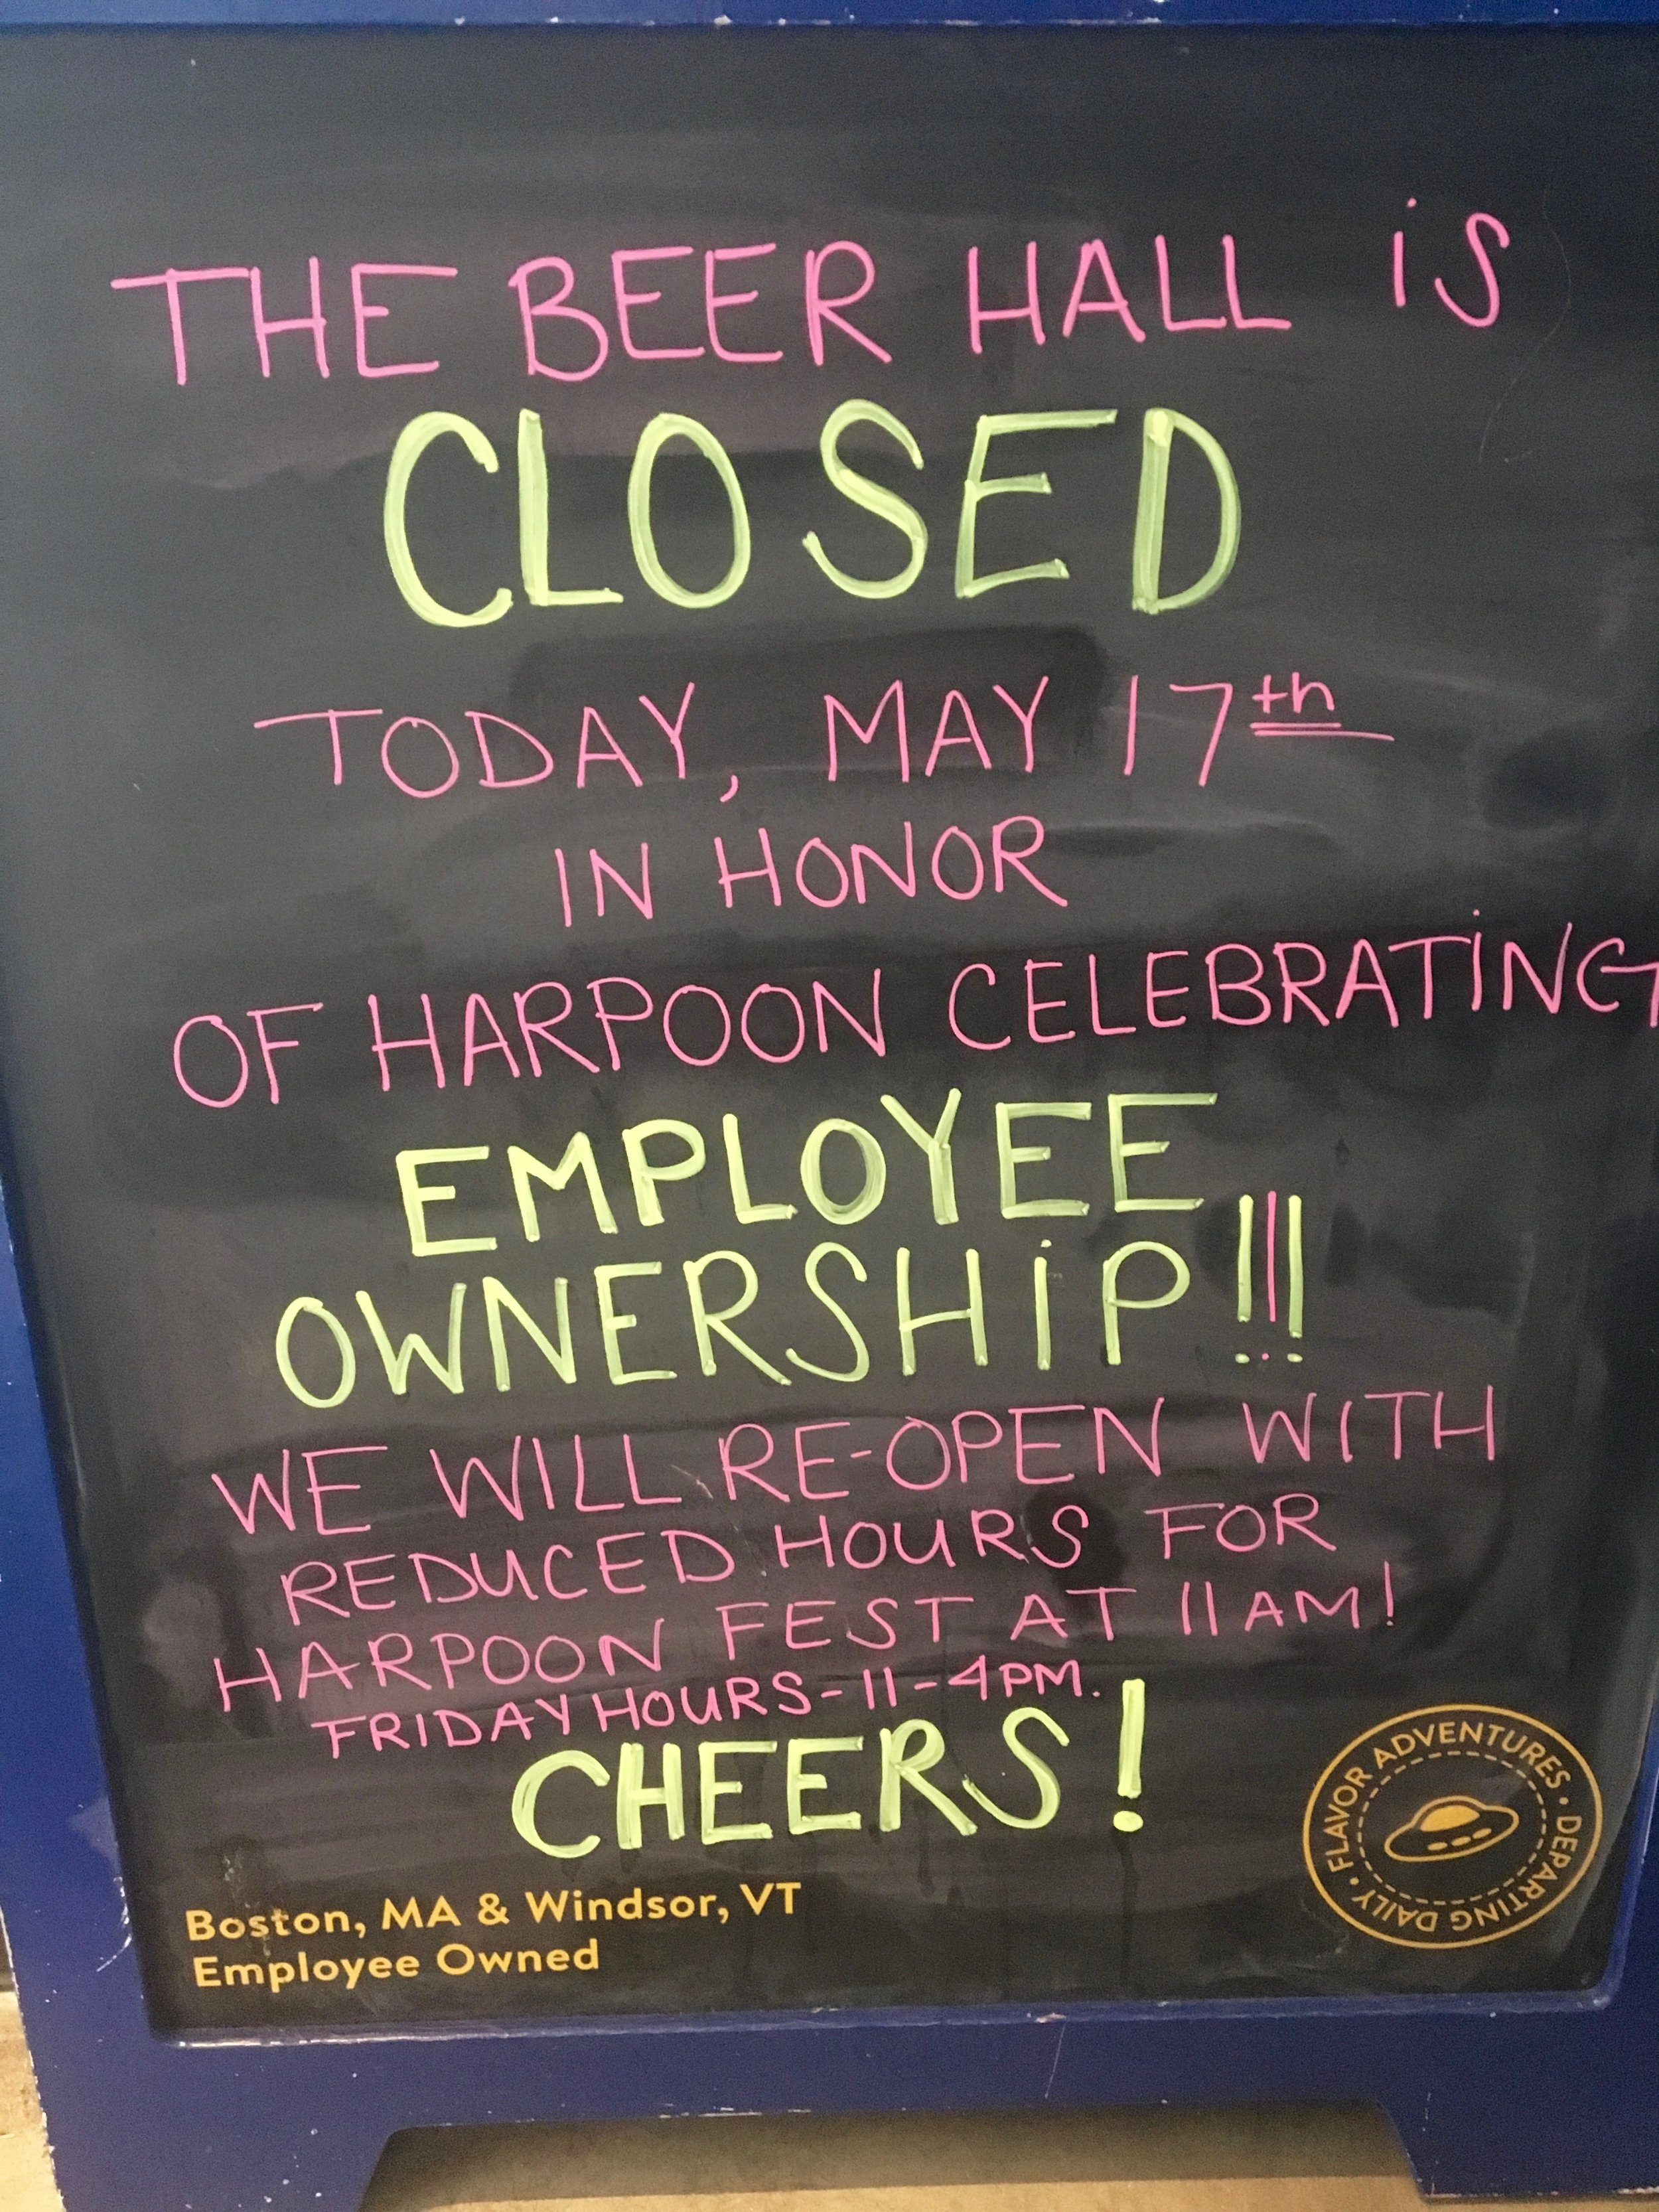 Just happened to see this sign tucked away in the corner. I asked Chris and Rich about it later and they said that every year they close the company for a day to celebrate being employee owners.